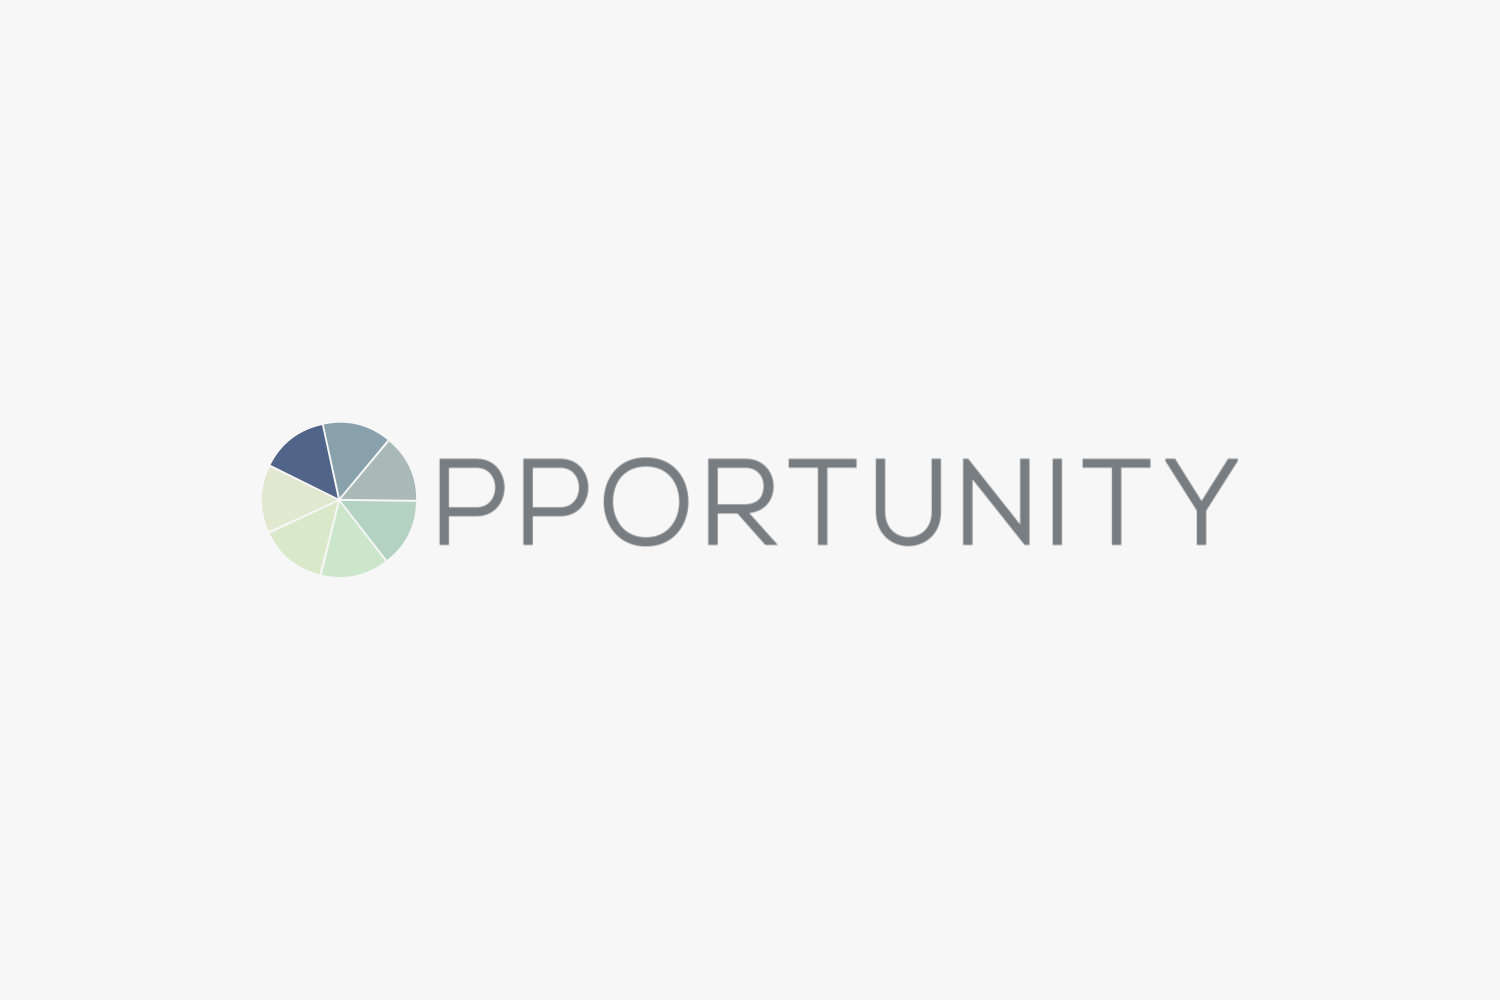 Opportunity Wheel Animation | The Greenlining Institute